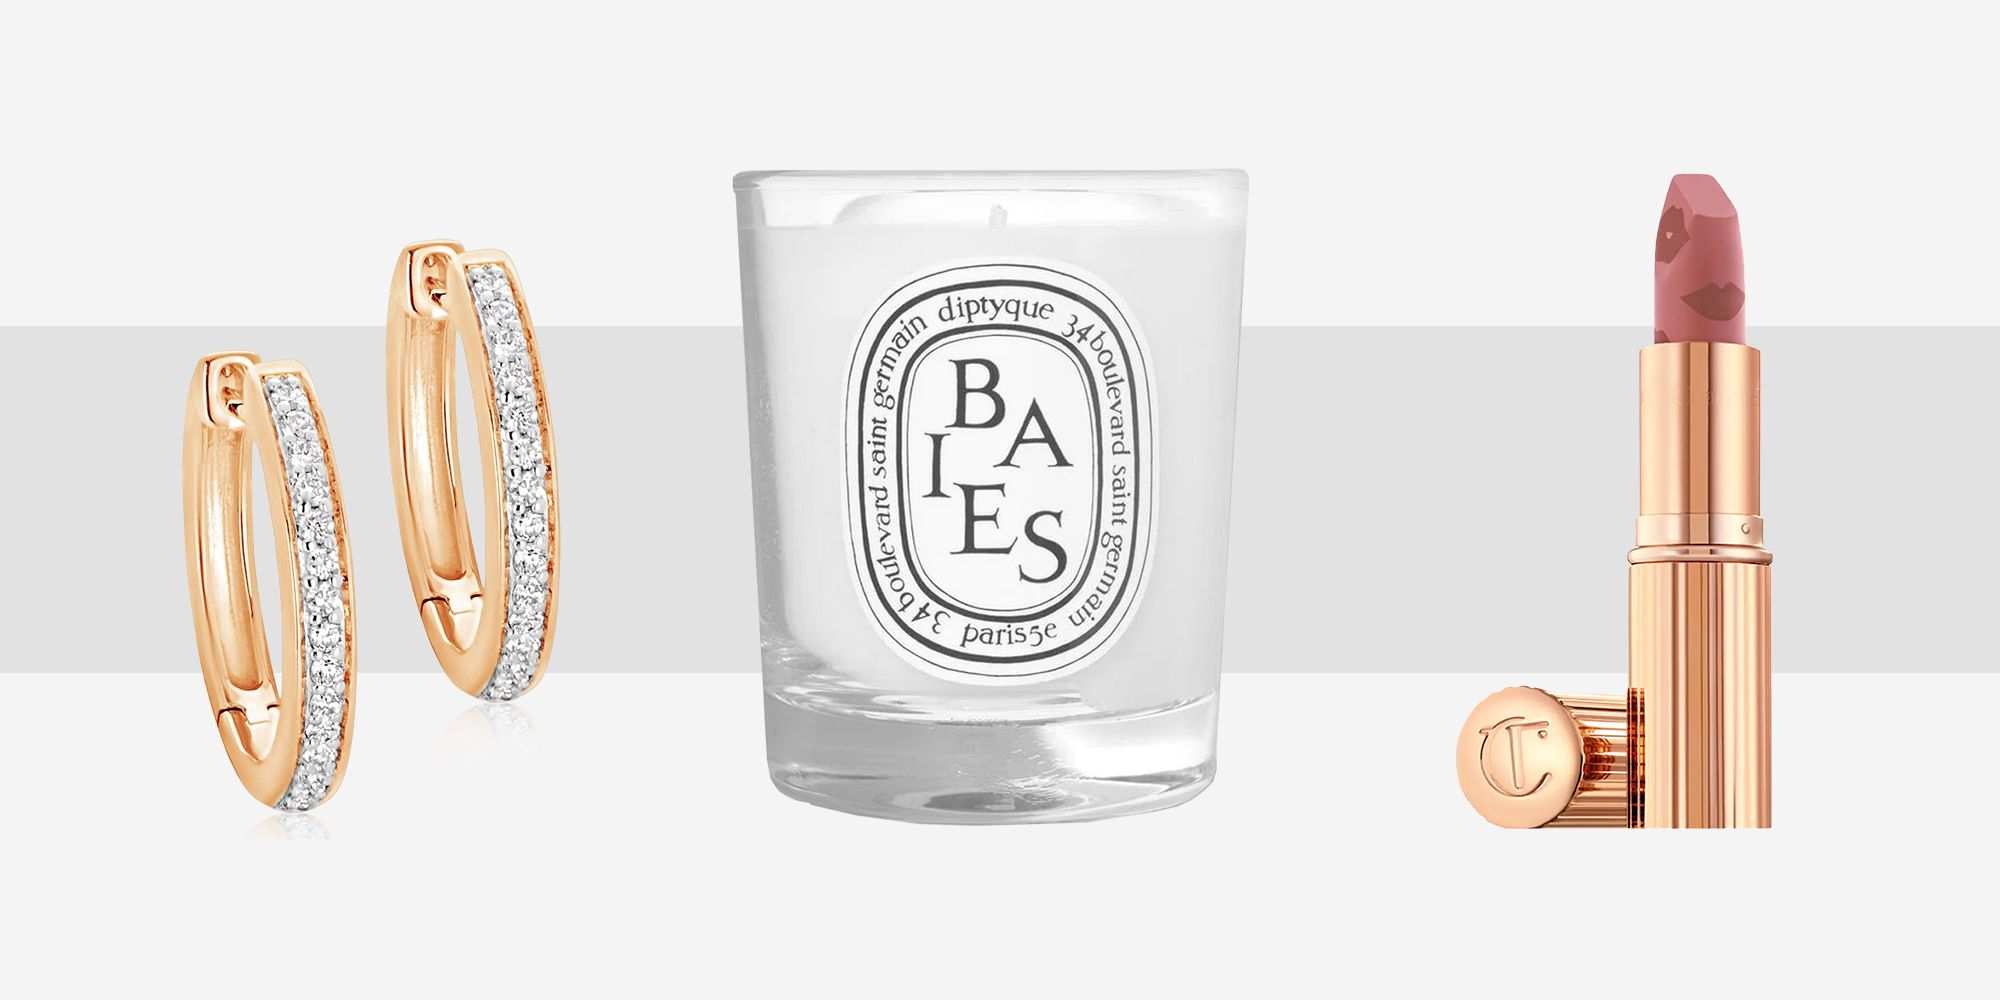 50 Best Gifts For Women 2021 Stylish And Unique Gift Ideas For Women